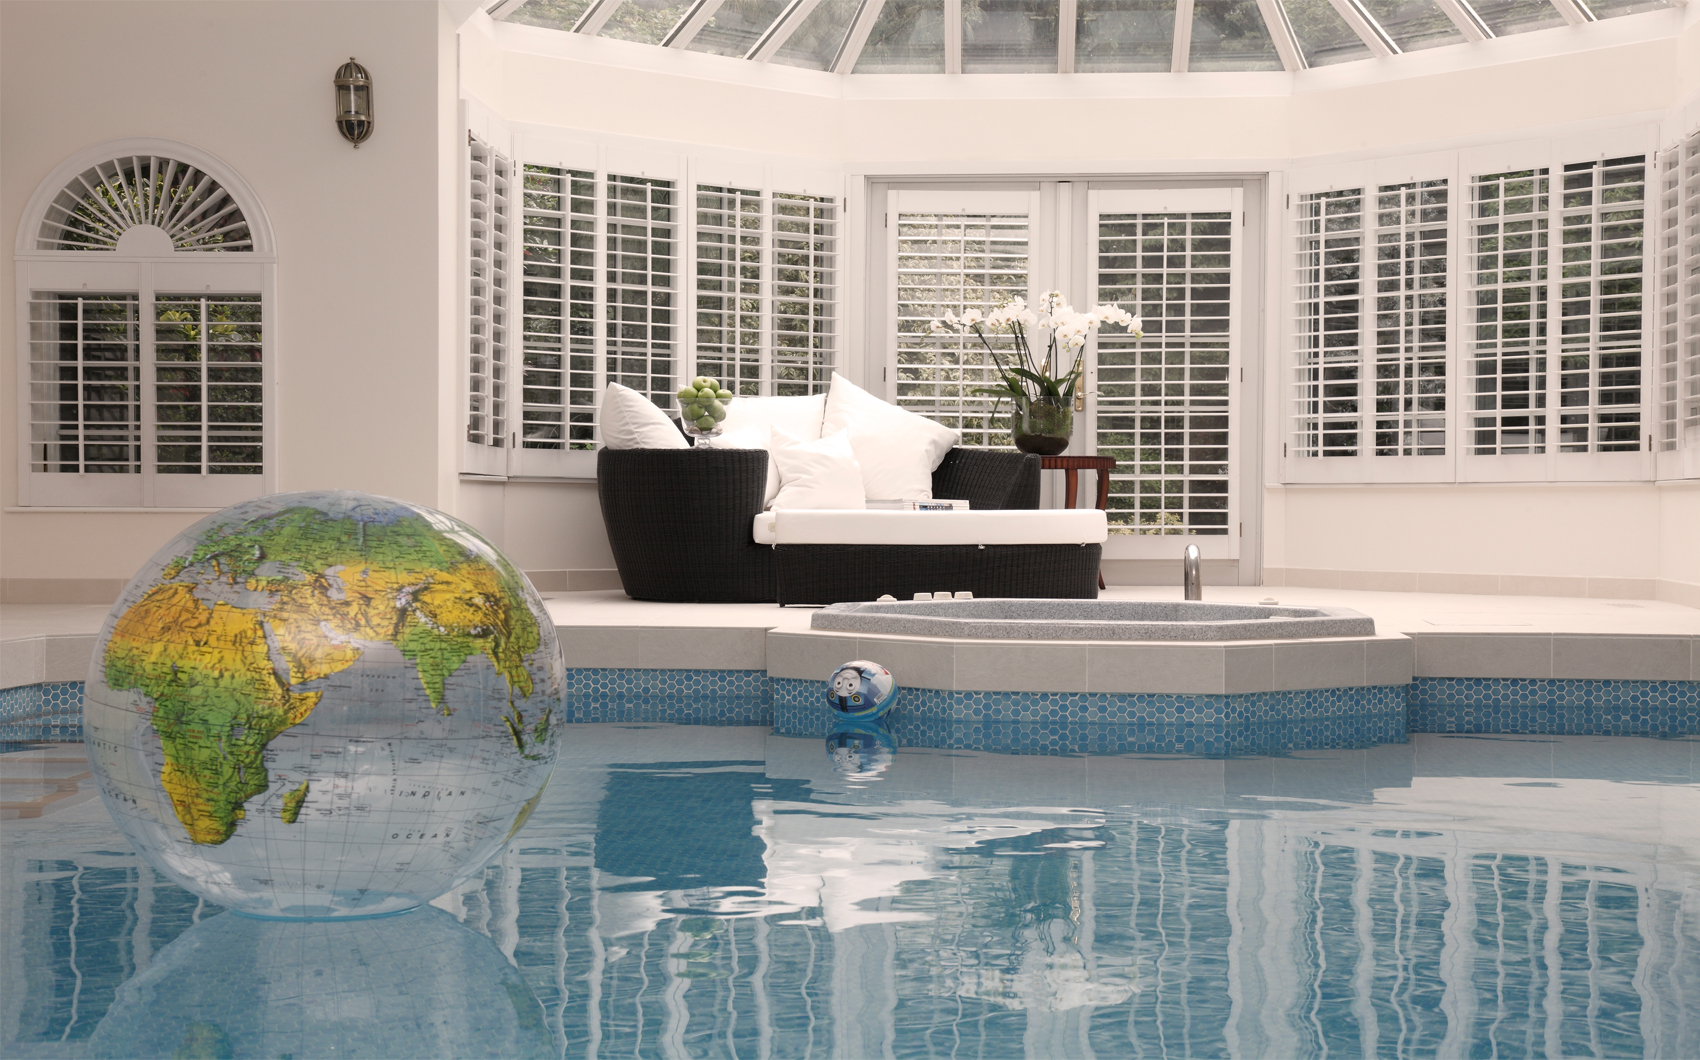 luxurious indoor swimming pool designed by top london interior designer rene dekker